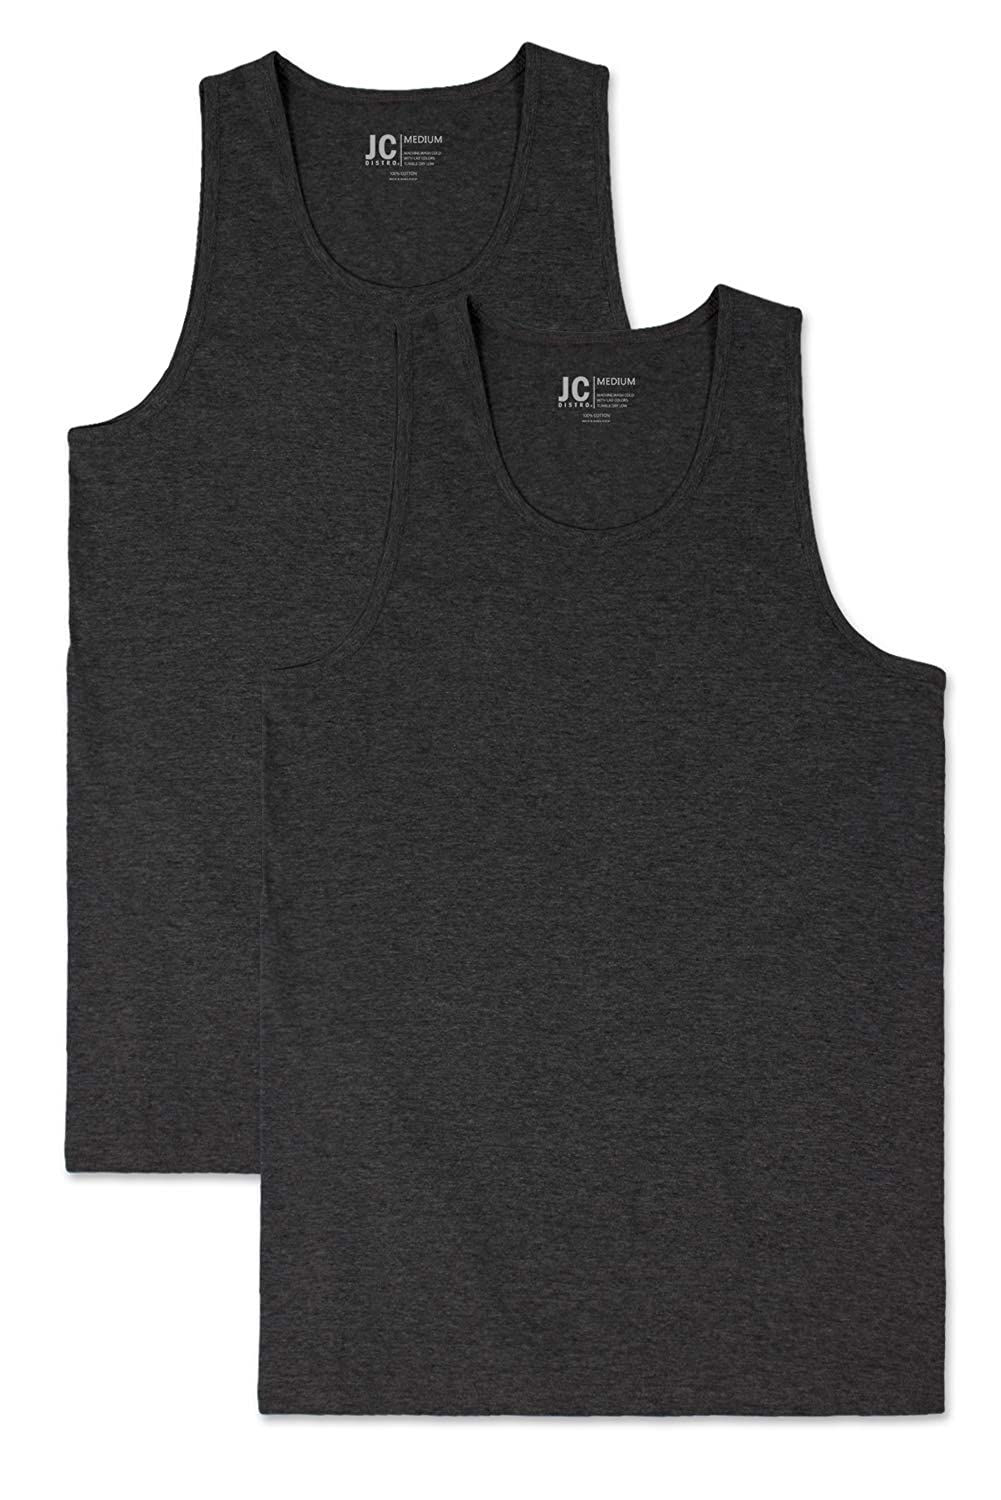 Size Upto 3XL JC DISTRO Mens Basic Solid Tank Top Jersey Casual Shirts